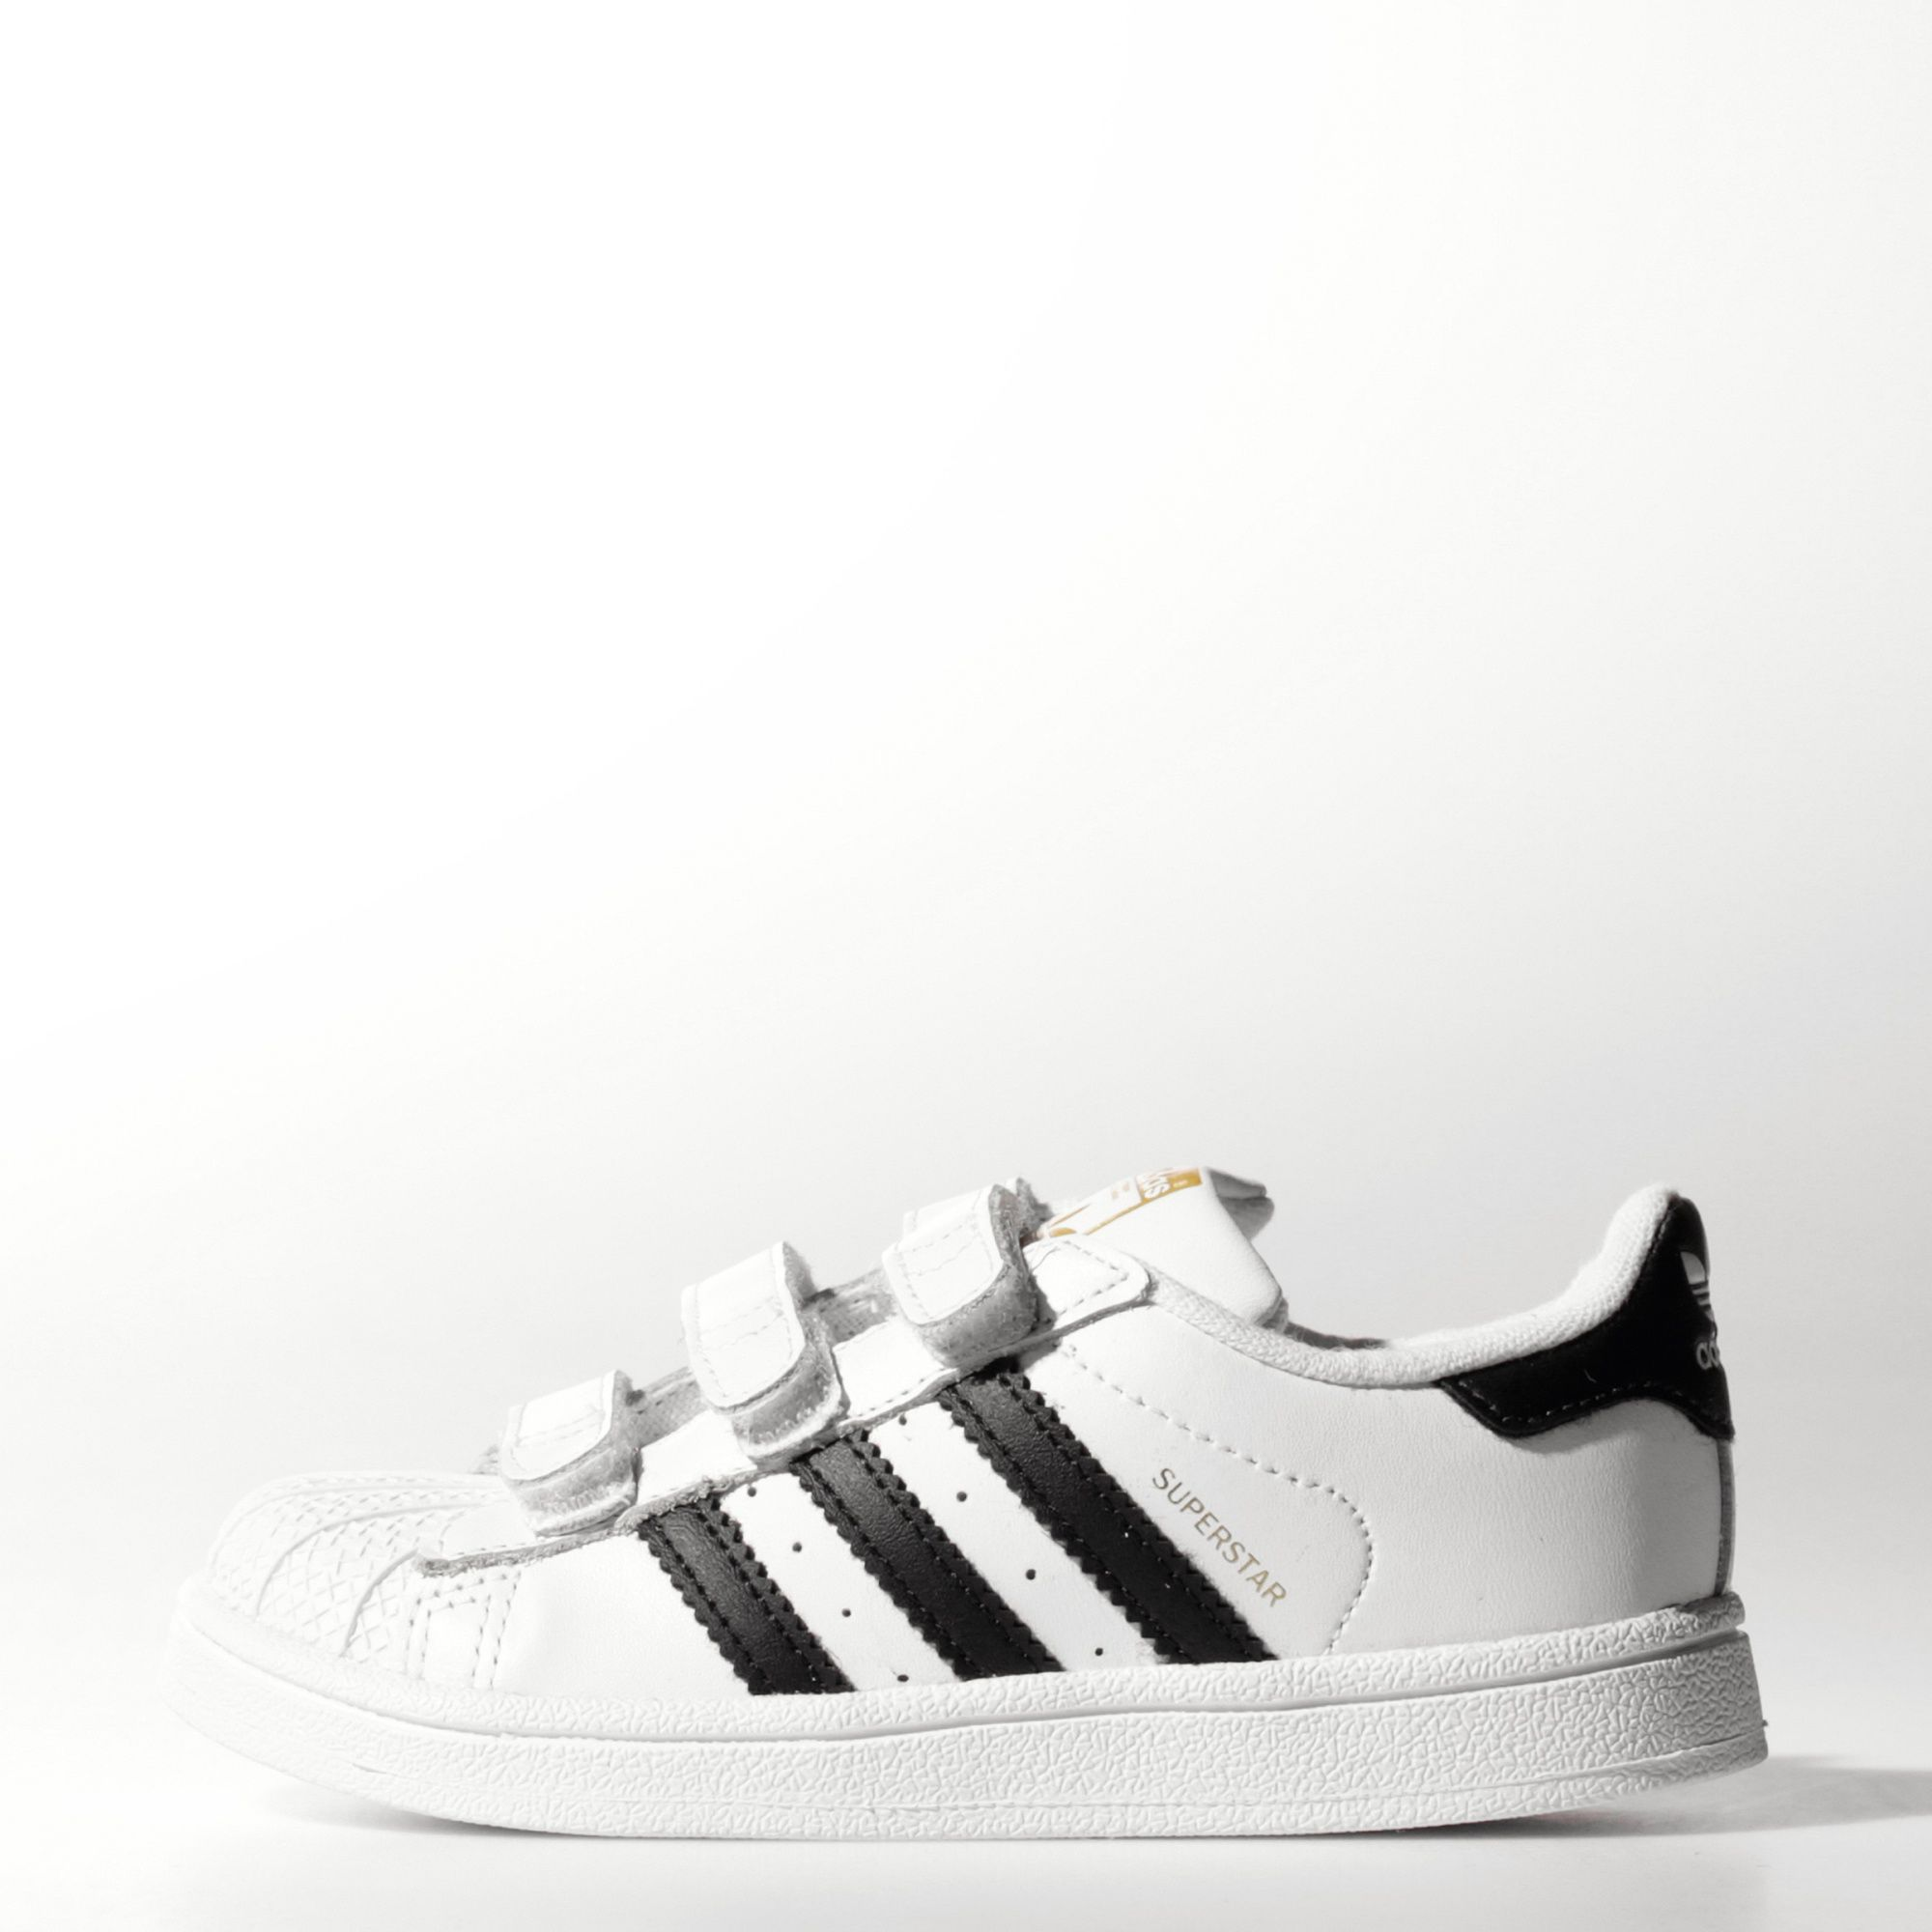 Детские кроссовки adidas originals superstar adidas Originals ... d07d51745ddd2